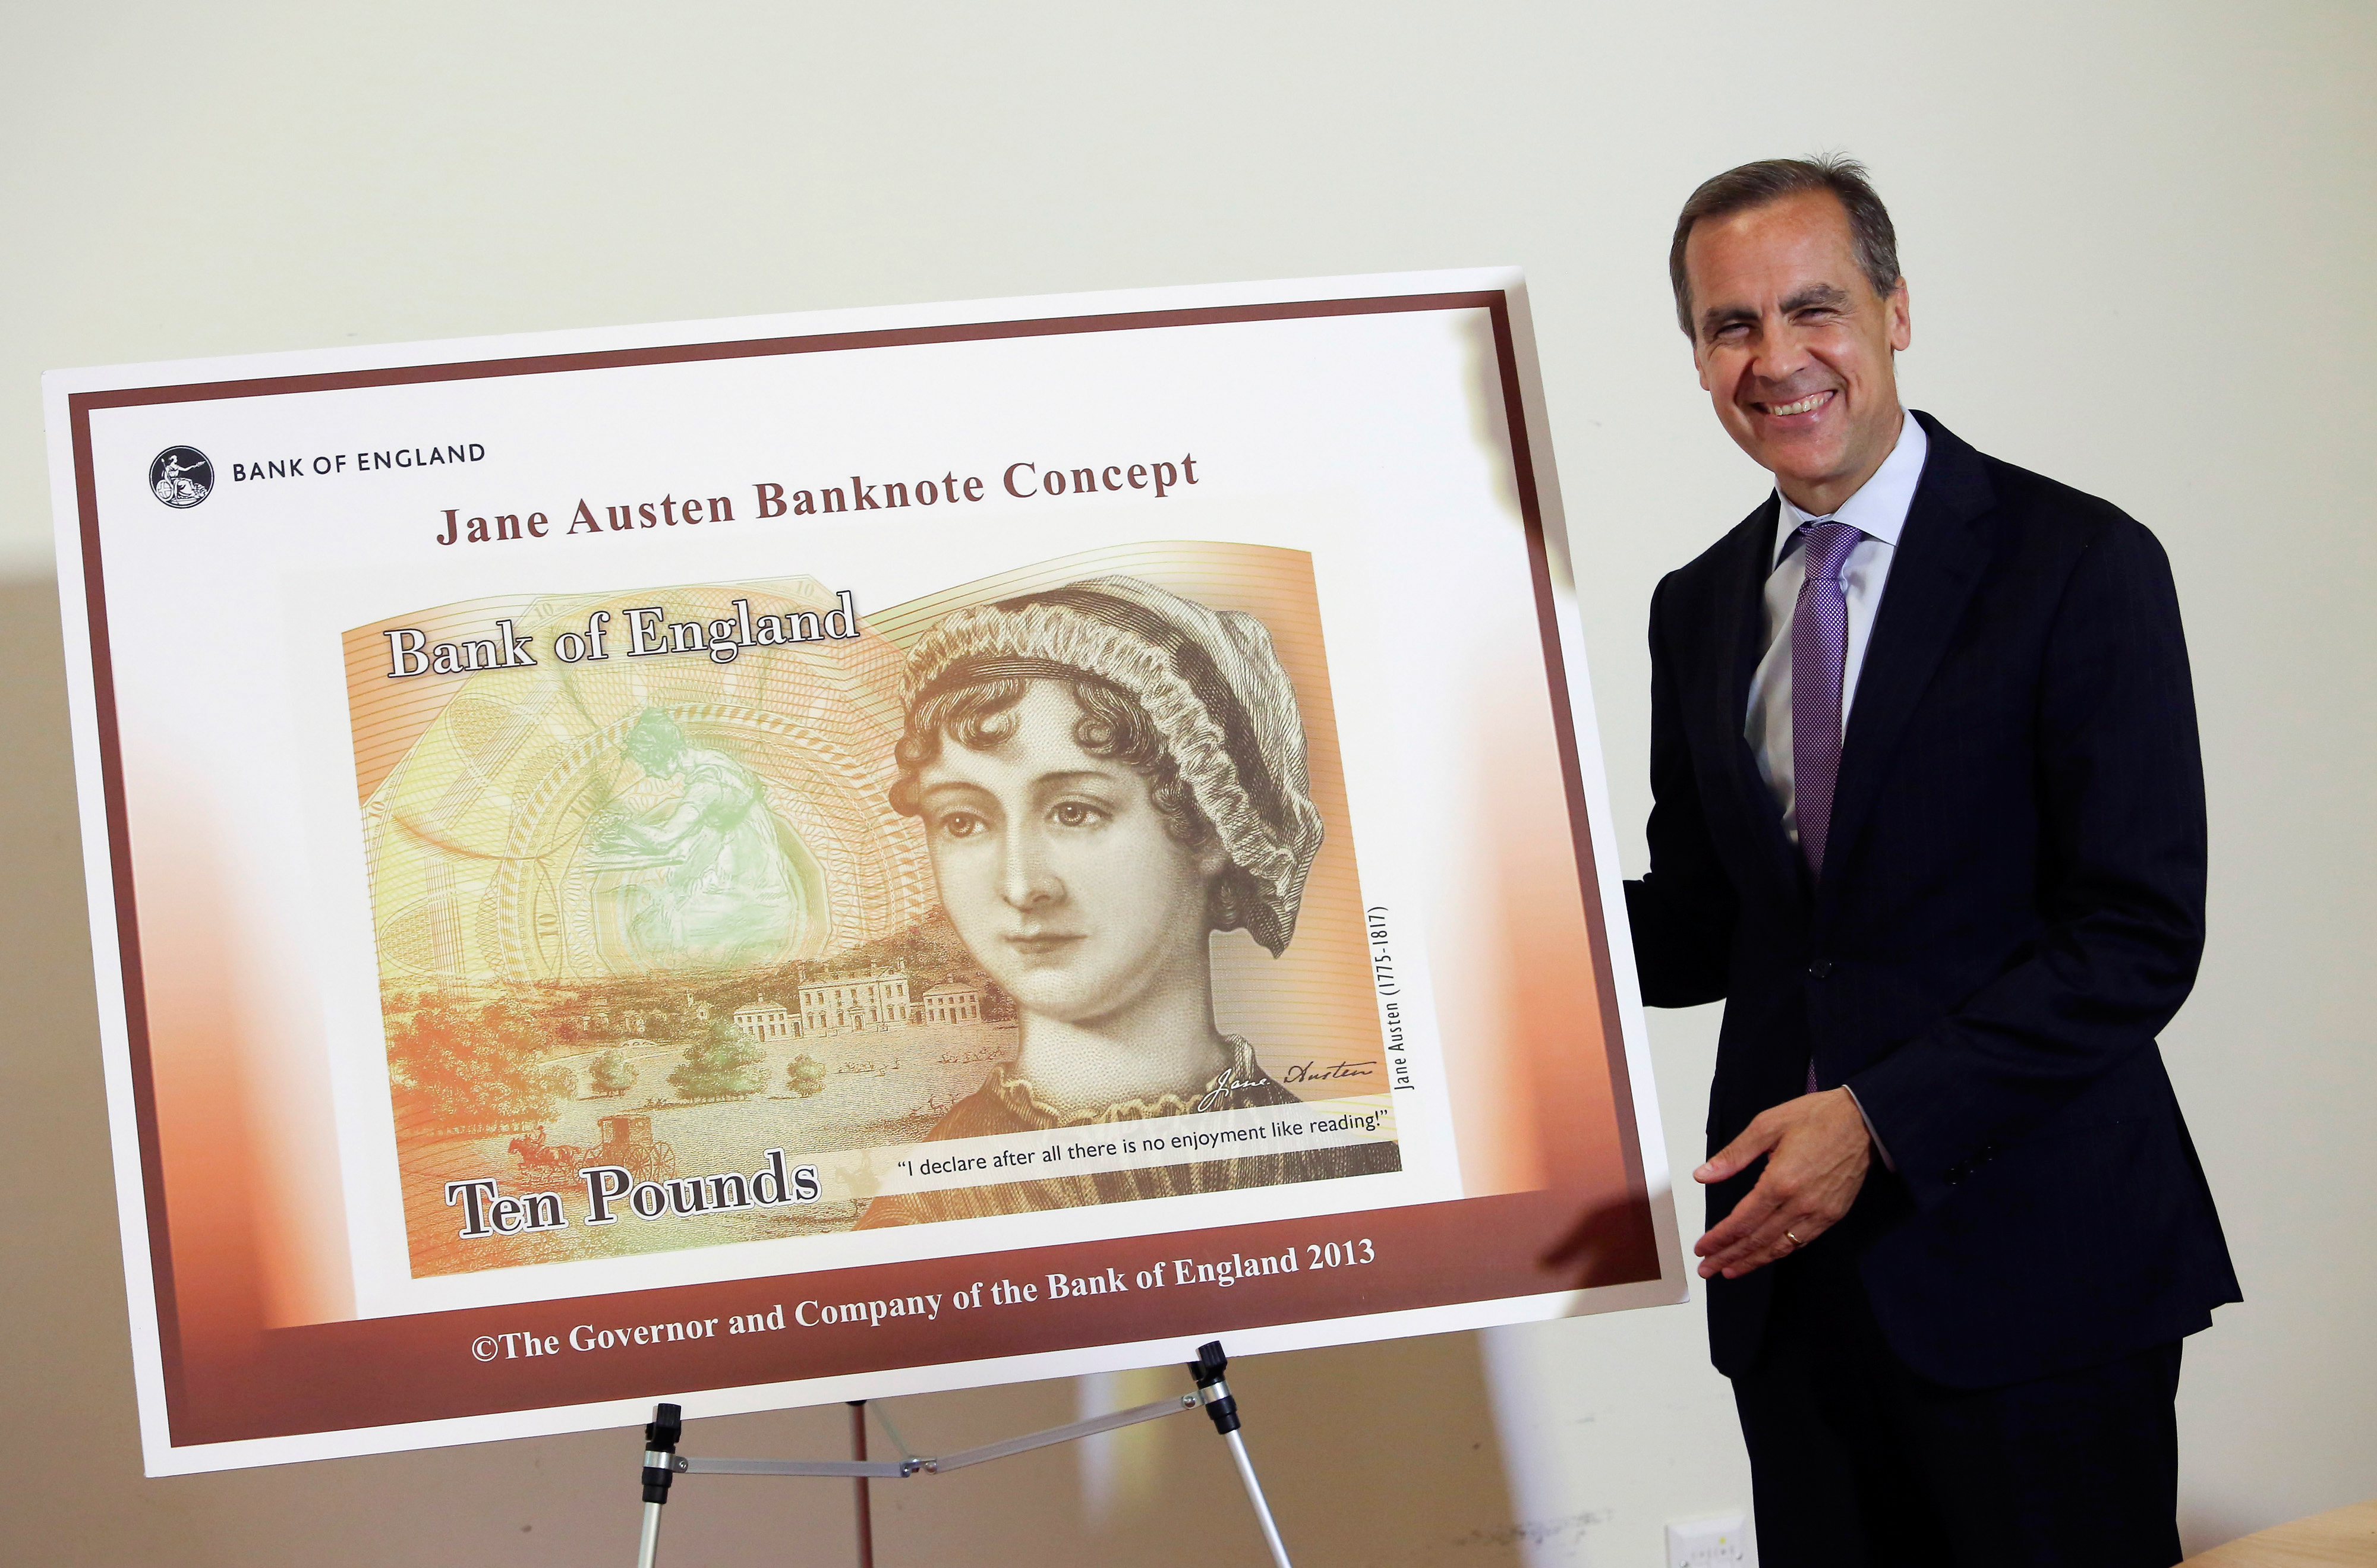 Jane Austen to feature on banknote. Mark Carney, the Governor of the Bank of England, with the ten pound note featuring Jane Austen at the Jane Austen House Museum in Chawton, near Alton. The Austen note will be issued within a year of the Churchill £5 note, which is targeted for issue during 2016.